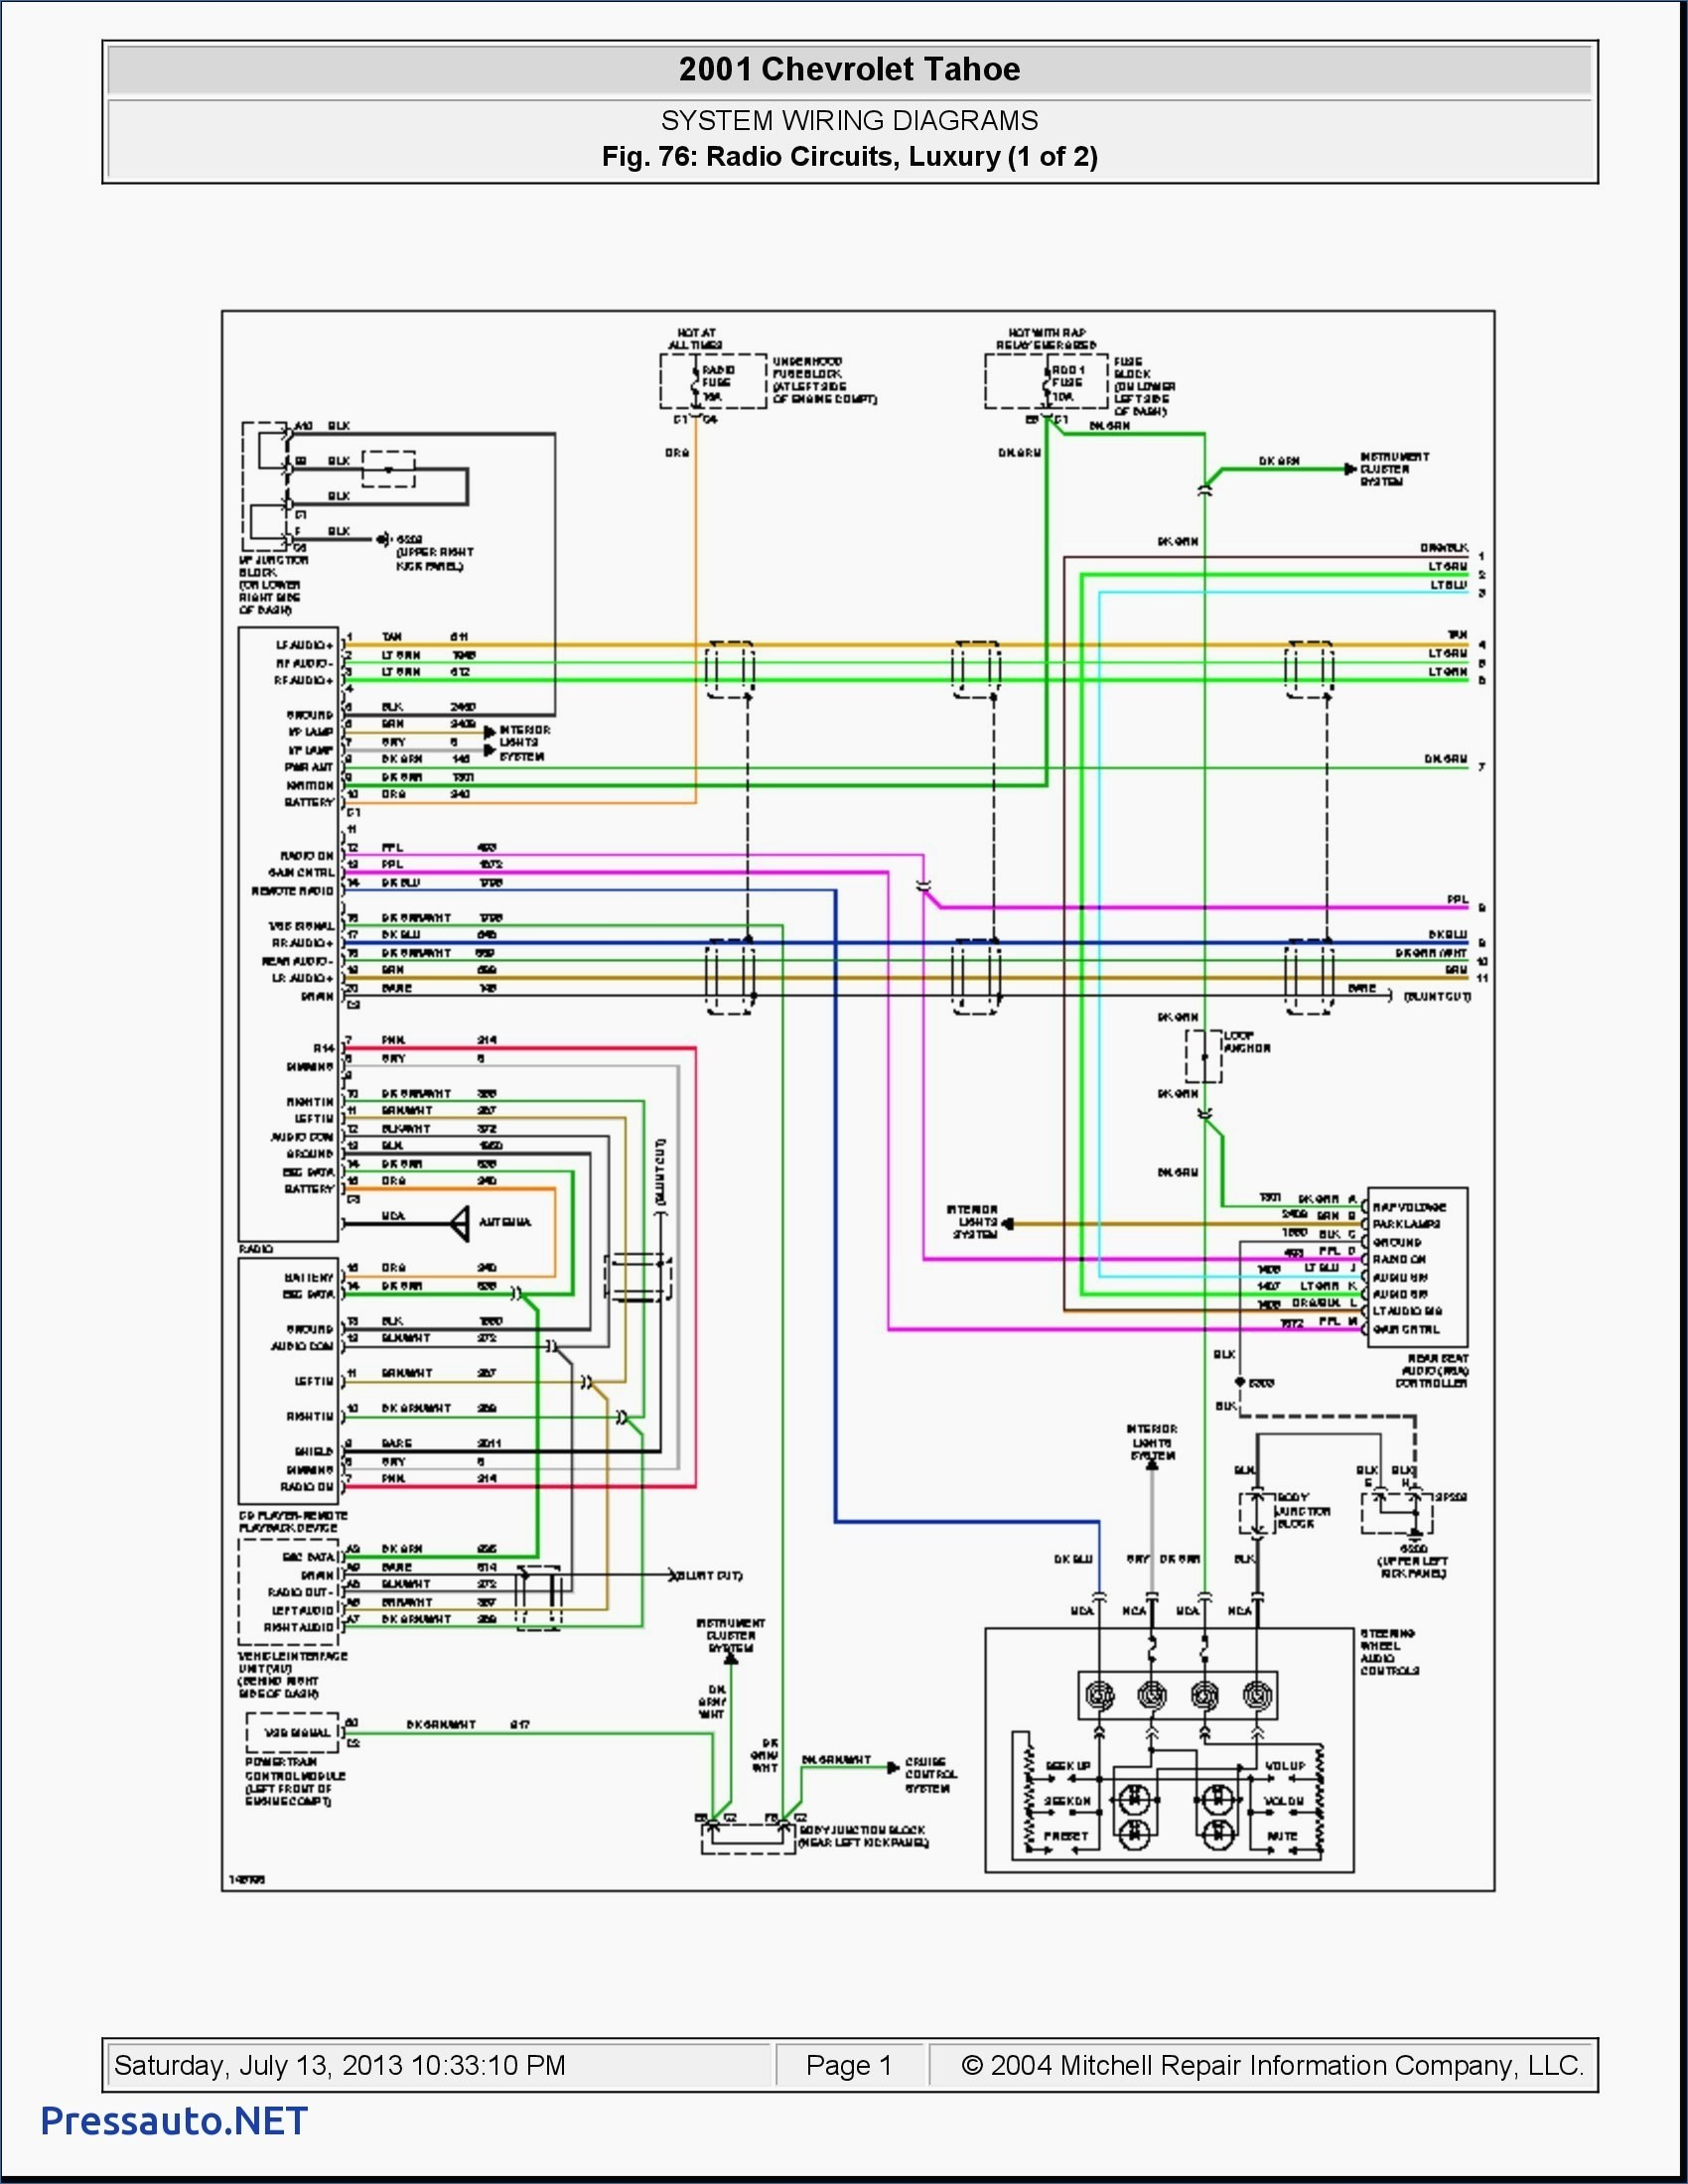 2003 Chevy Ke Controller Wiring Diagram Wiring Diagrams Data Write Write Ungiaggioloincucina It